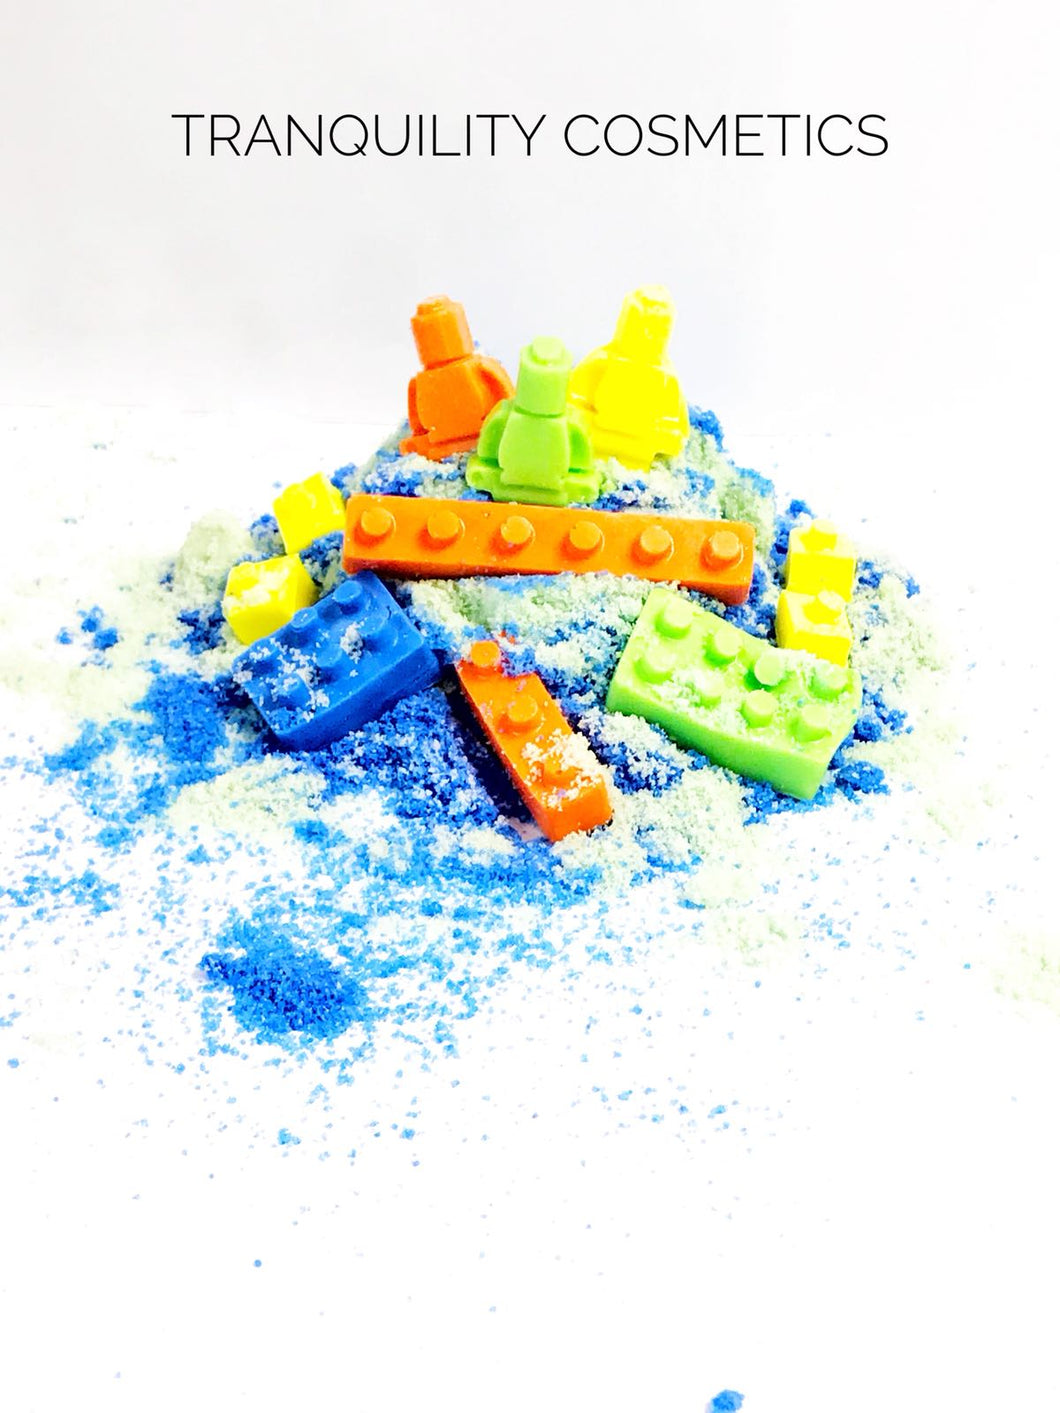 BLUE Bath Dust with Lego soap pieces